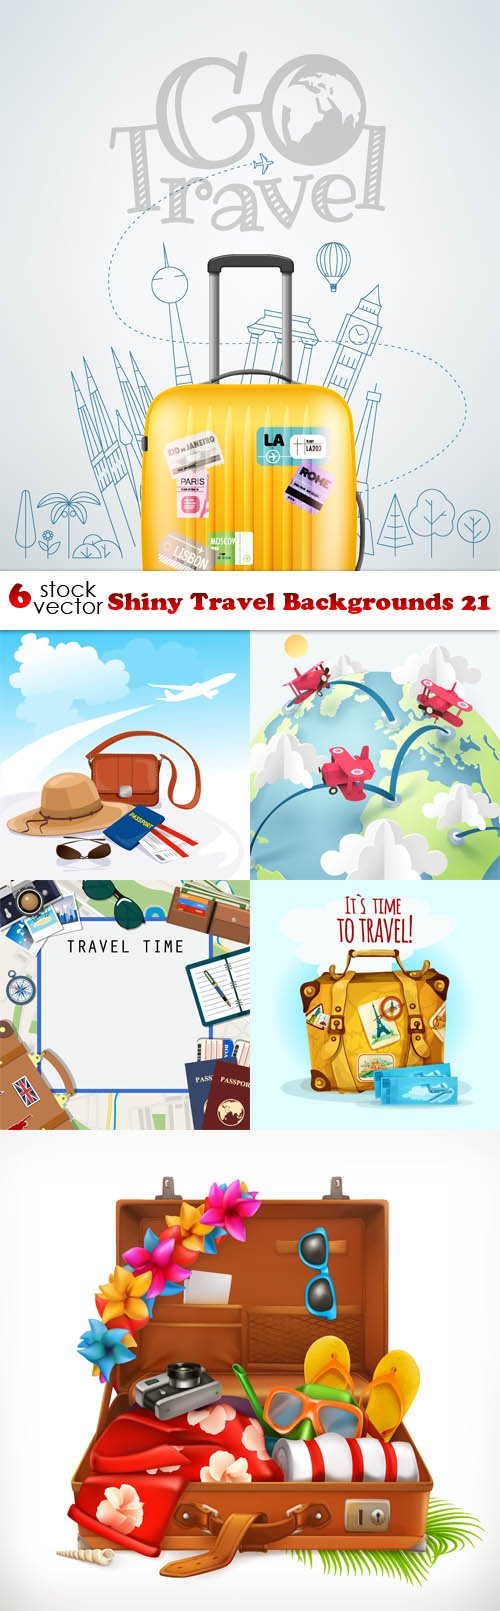 Vectors - Shiny Travel Backgrounds 21